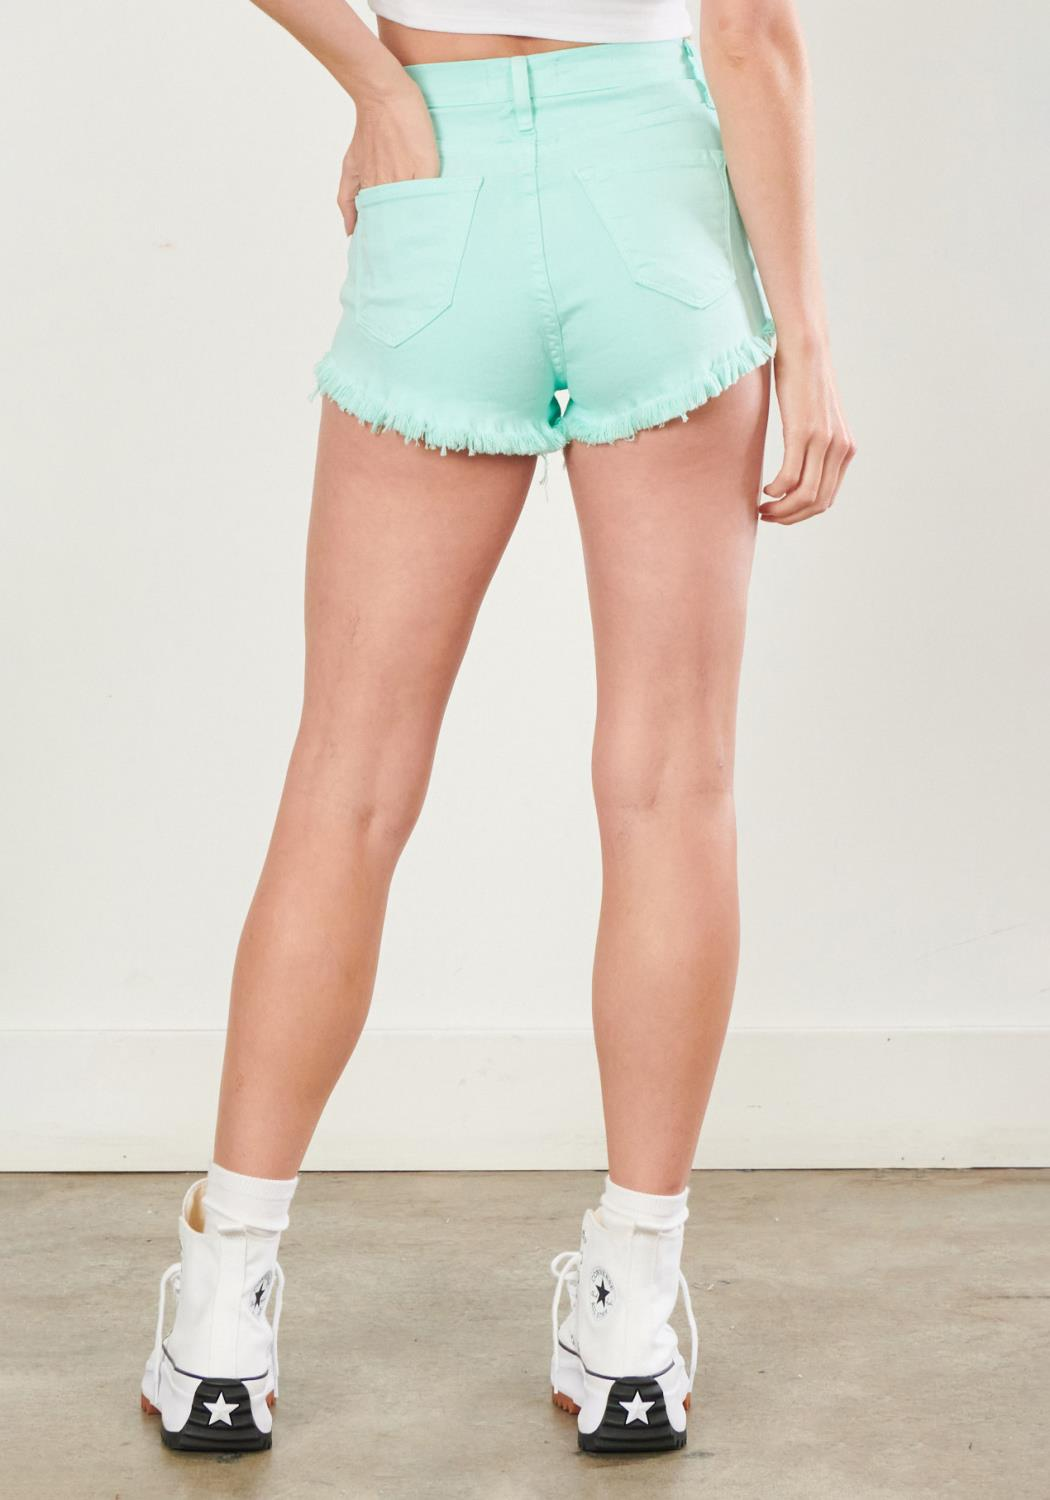 Joyride Shorts